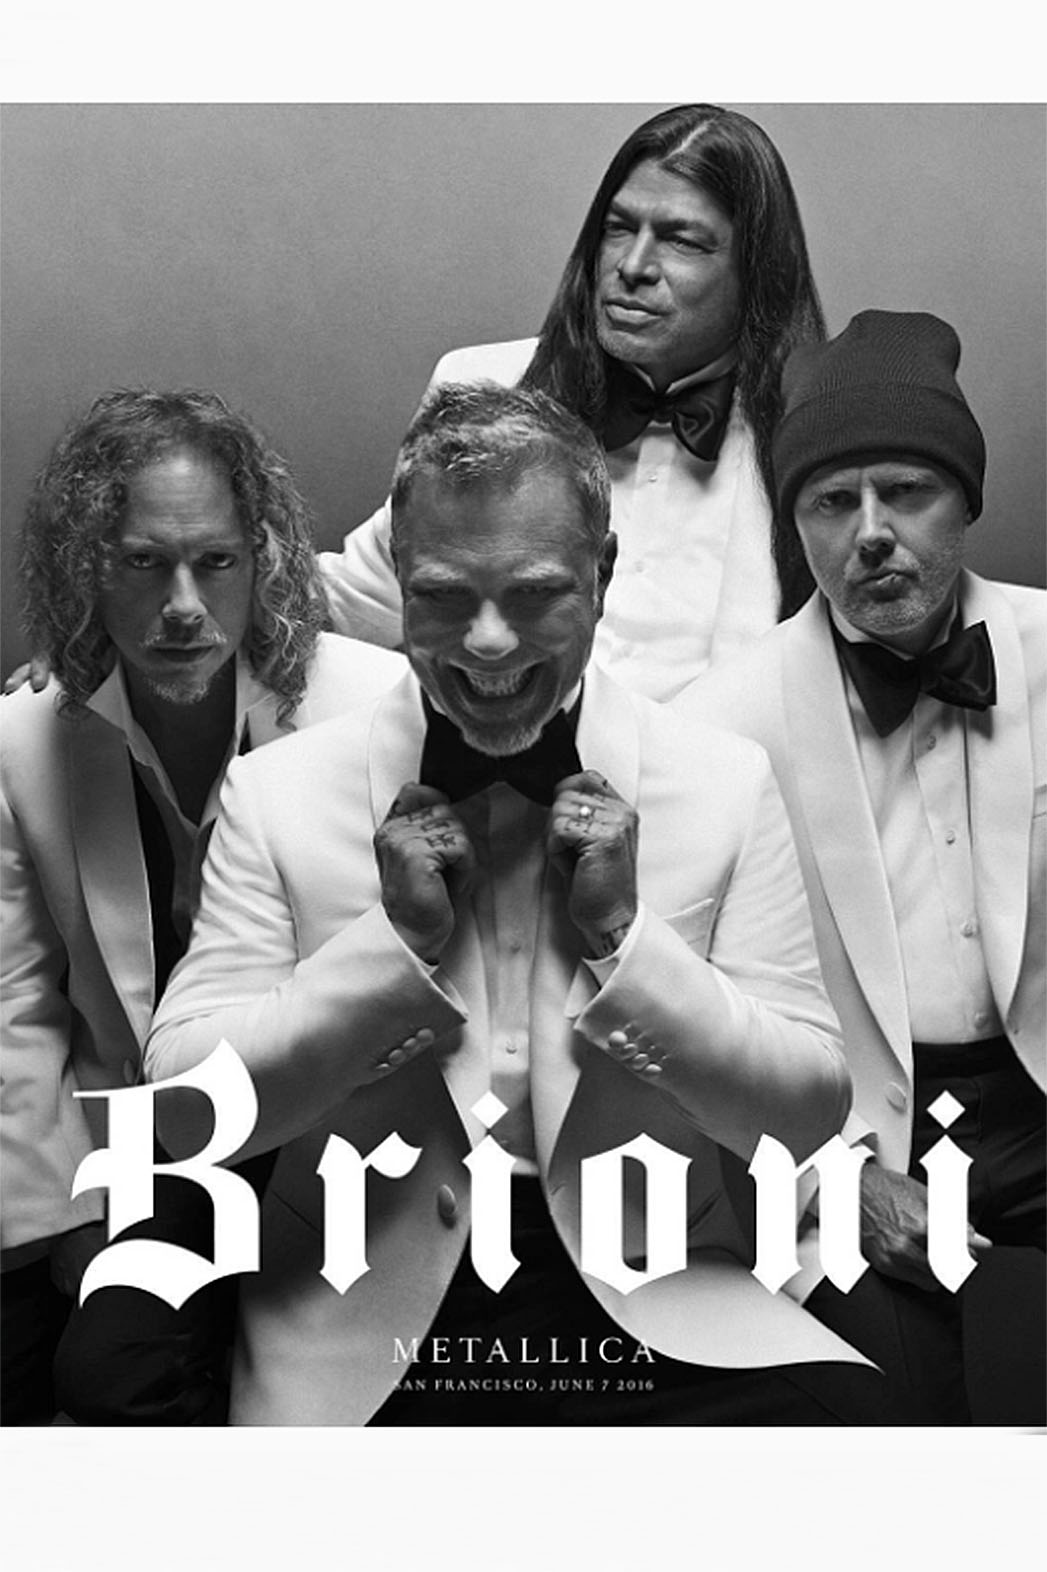 Metallica - Brioni - first creative campaign Screen Shot-P 2016